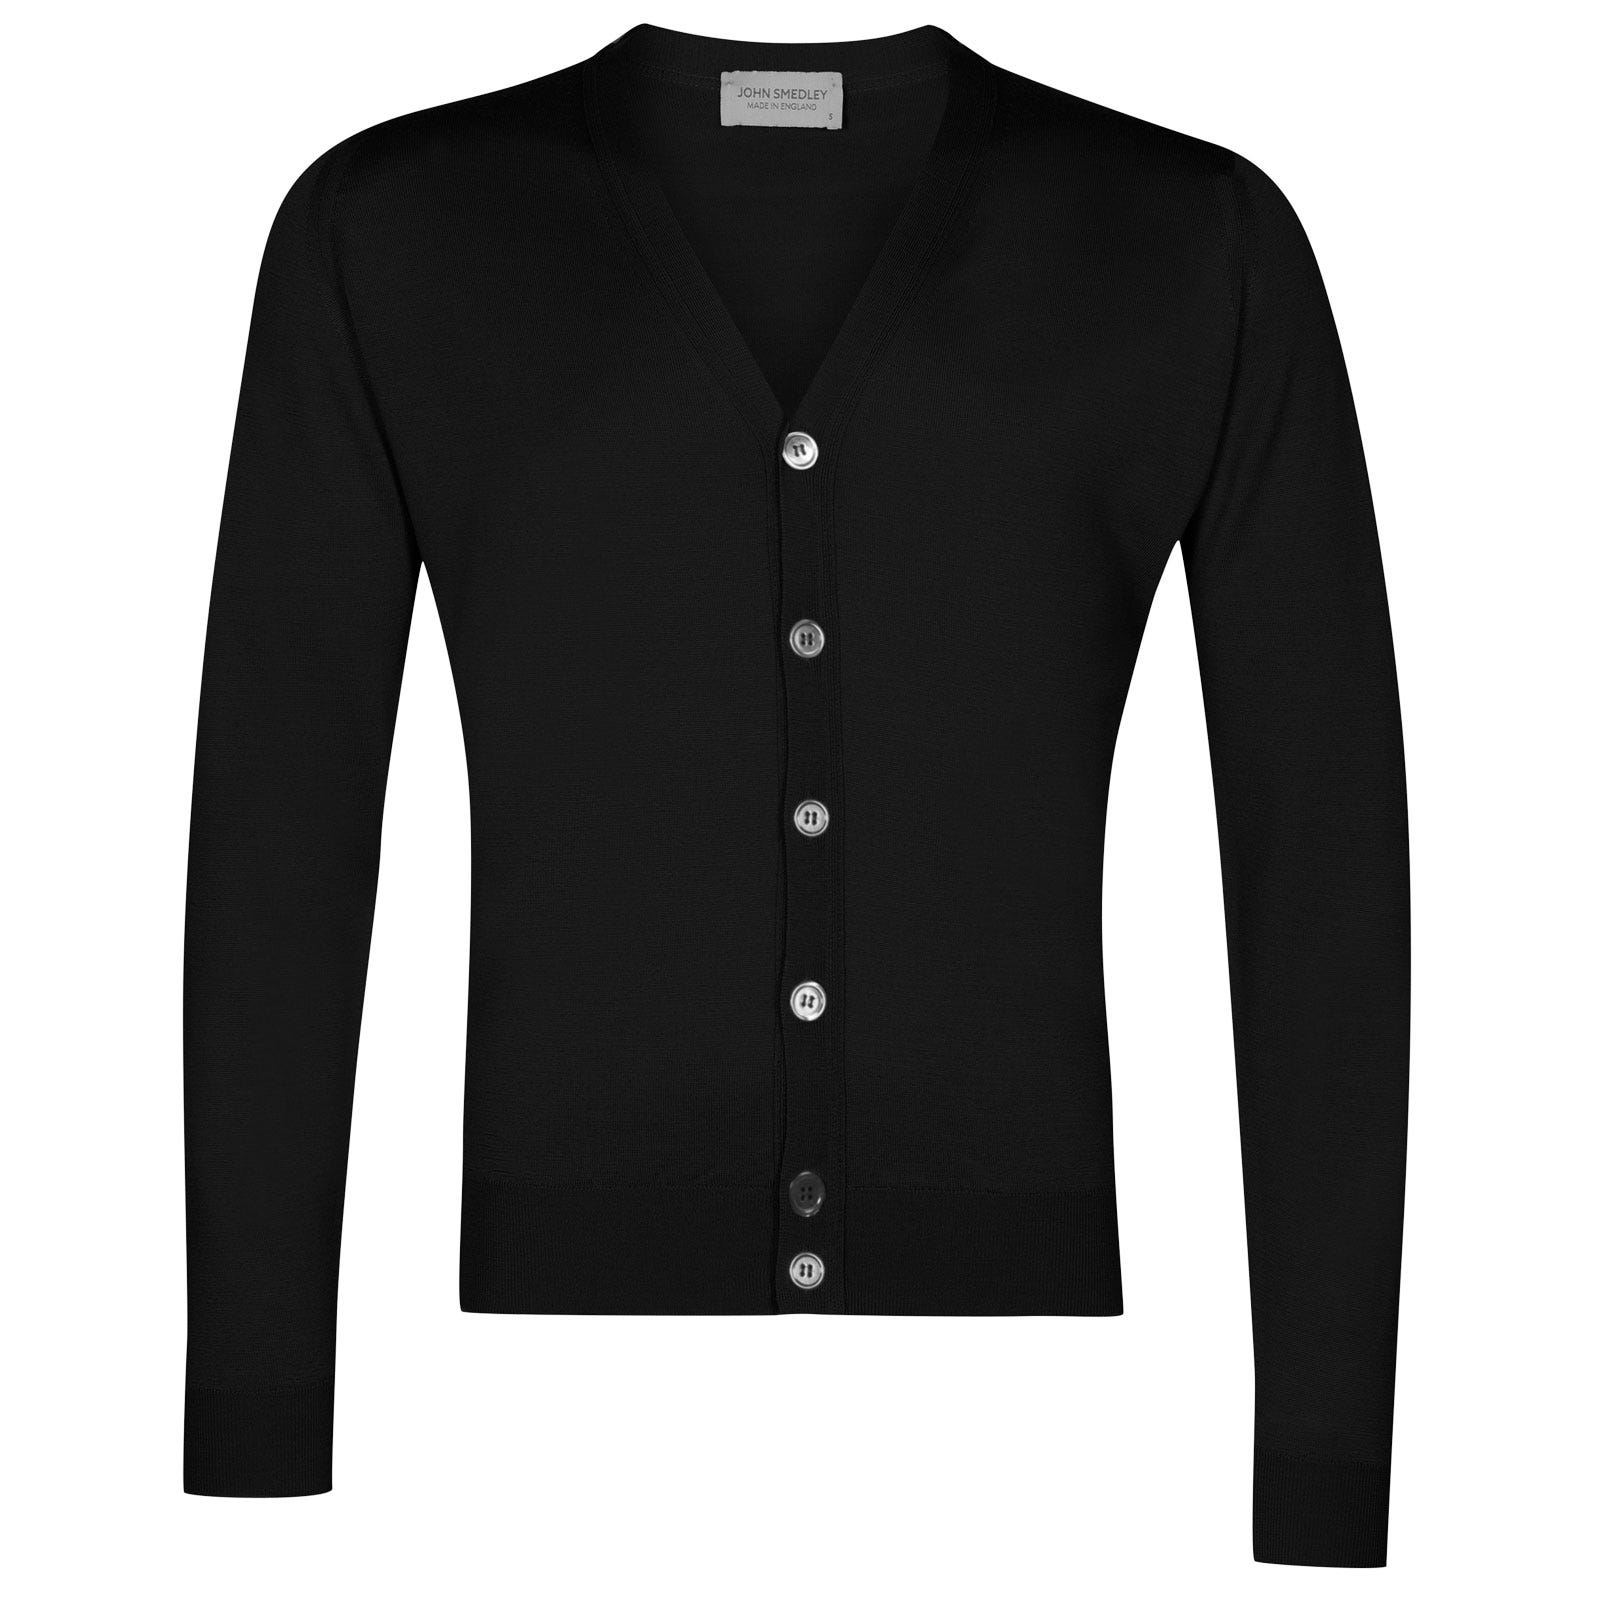 John Smedley Naples Merino Wool Cardigan in Black-S